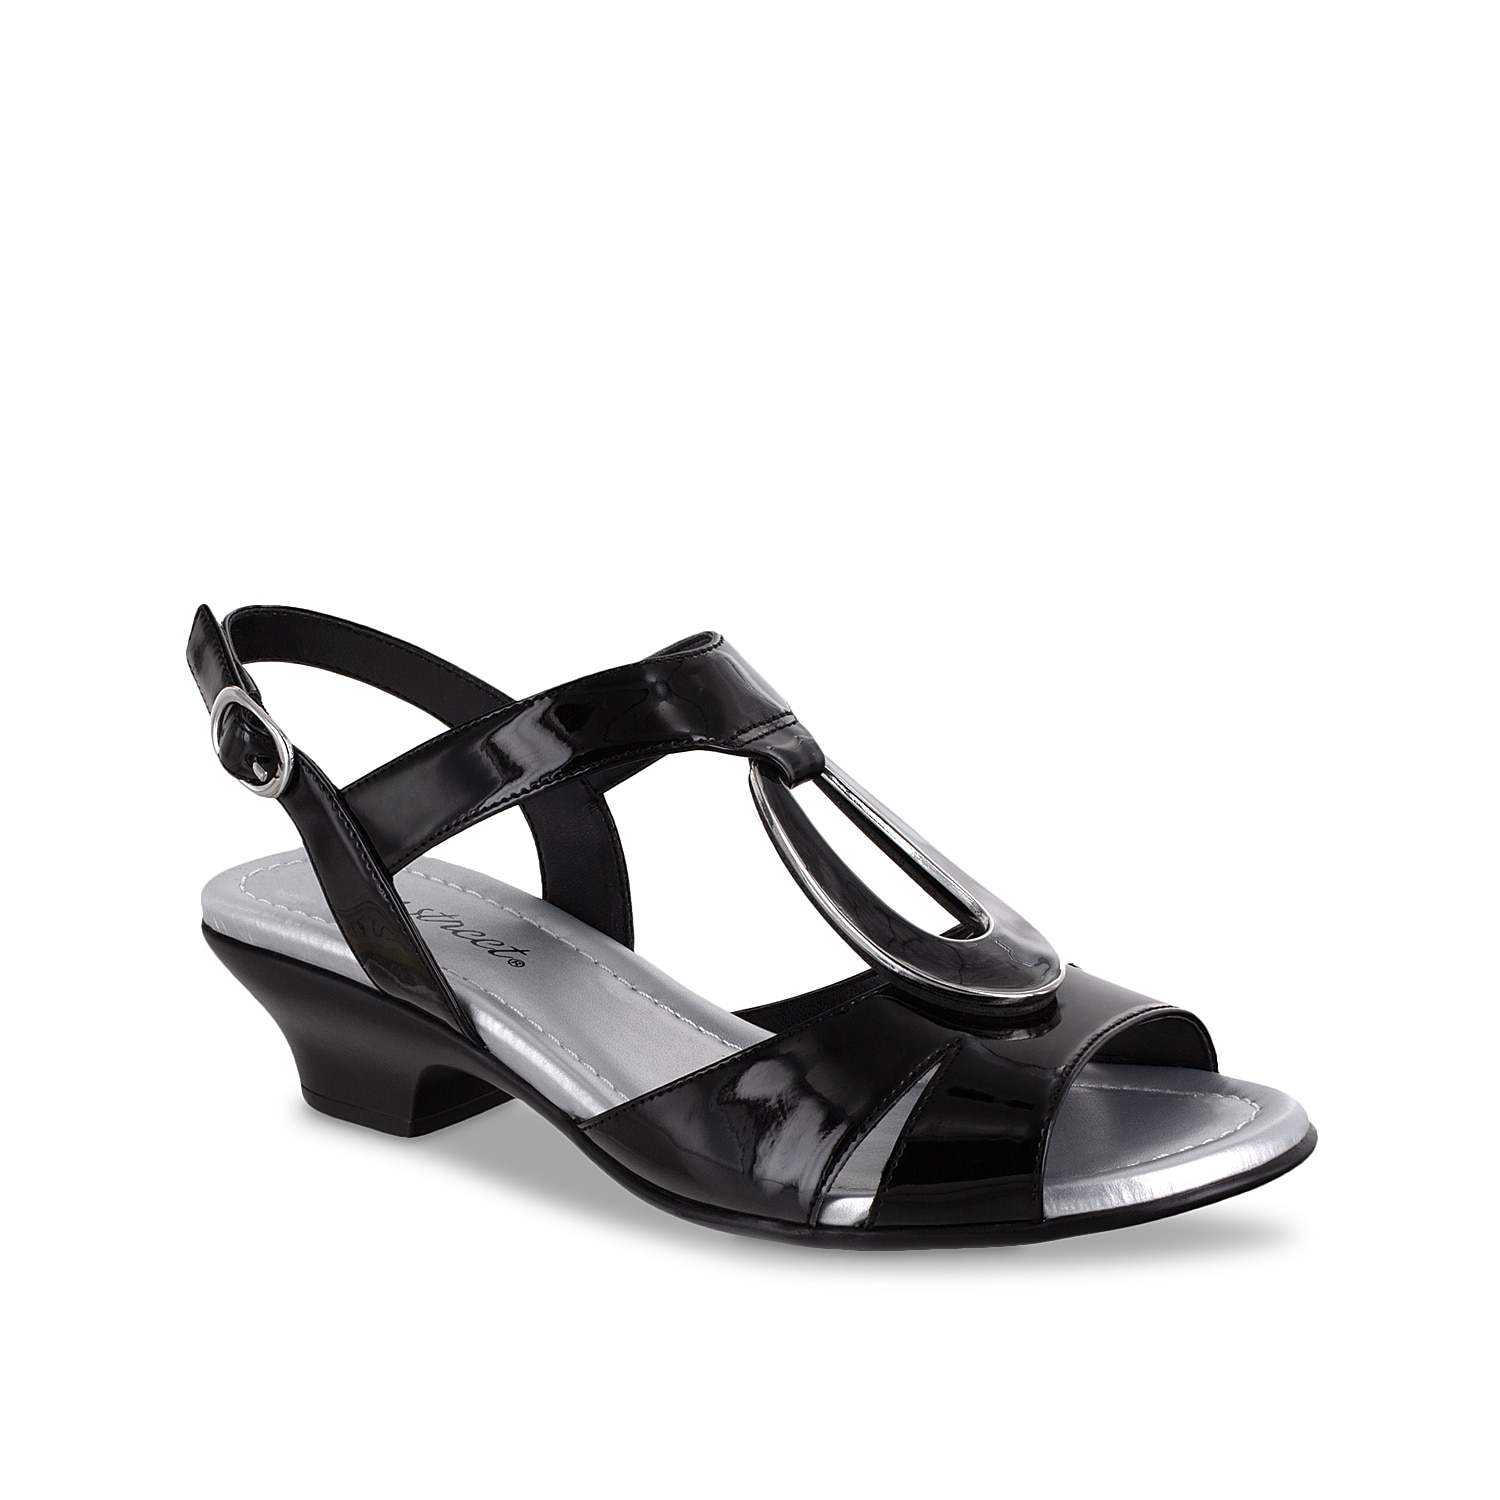 Easy street brings you the Phoenix sandal for your warm weather casual style. The simple slingback strap and generously padded footbed keeps you on your feet all day long!